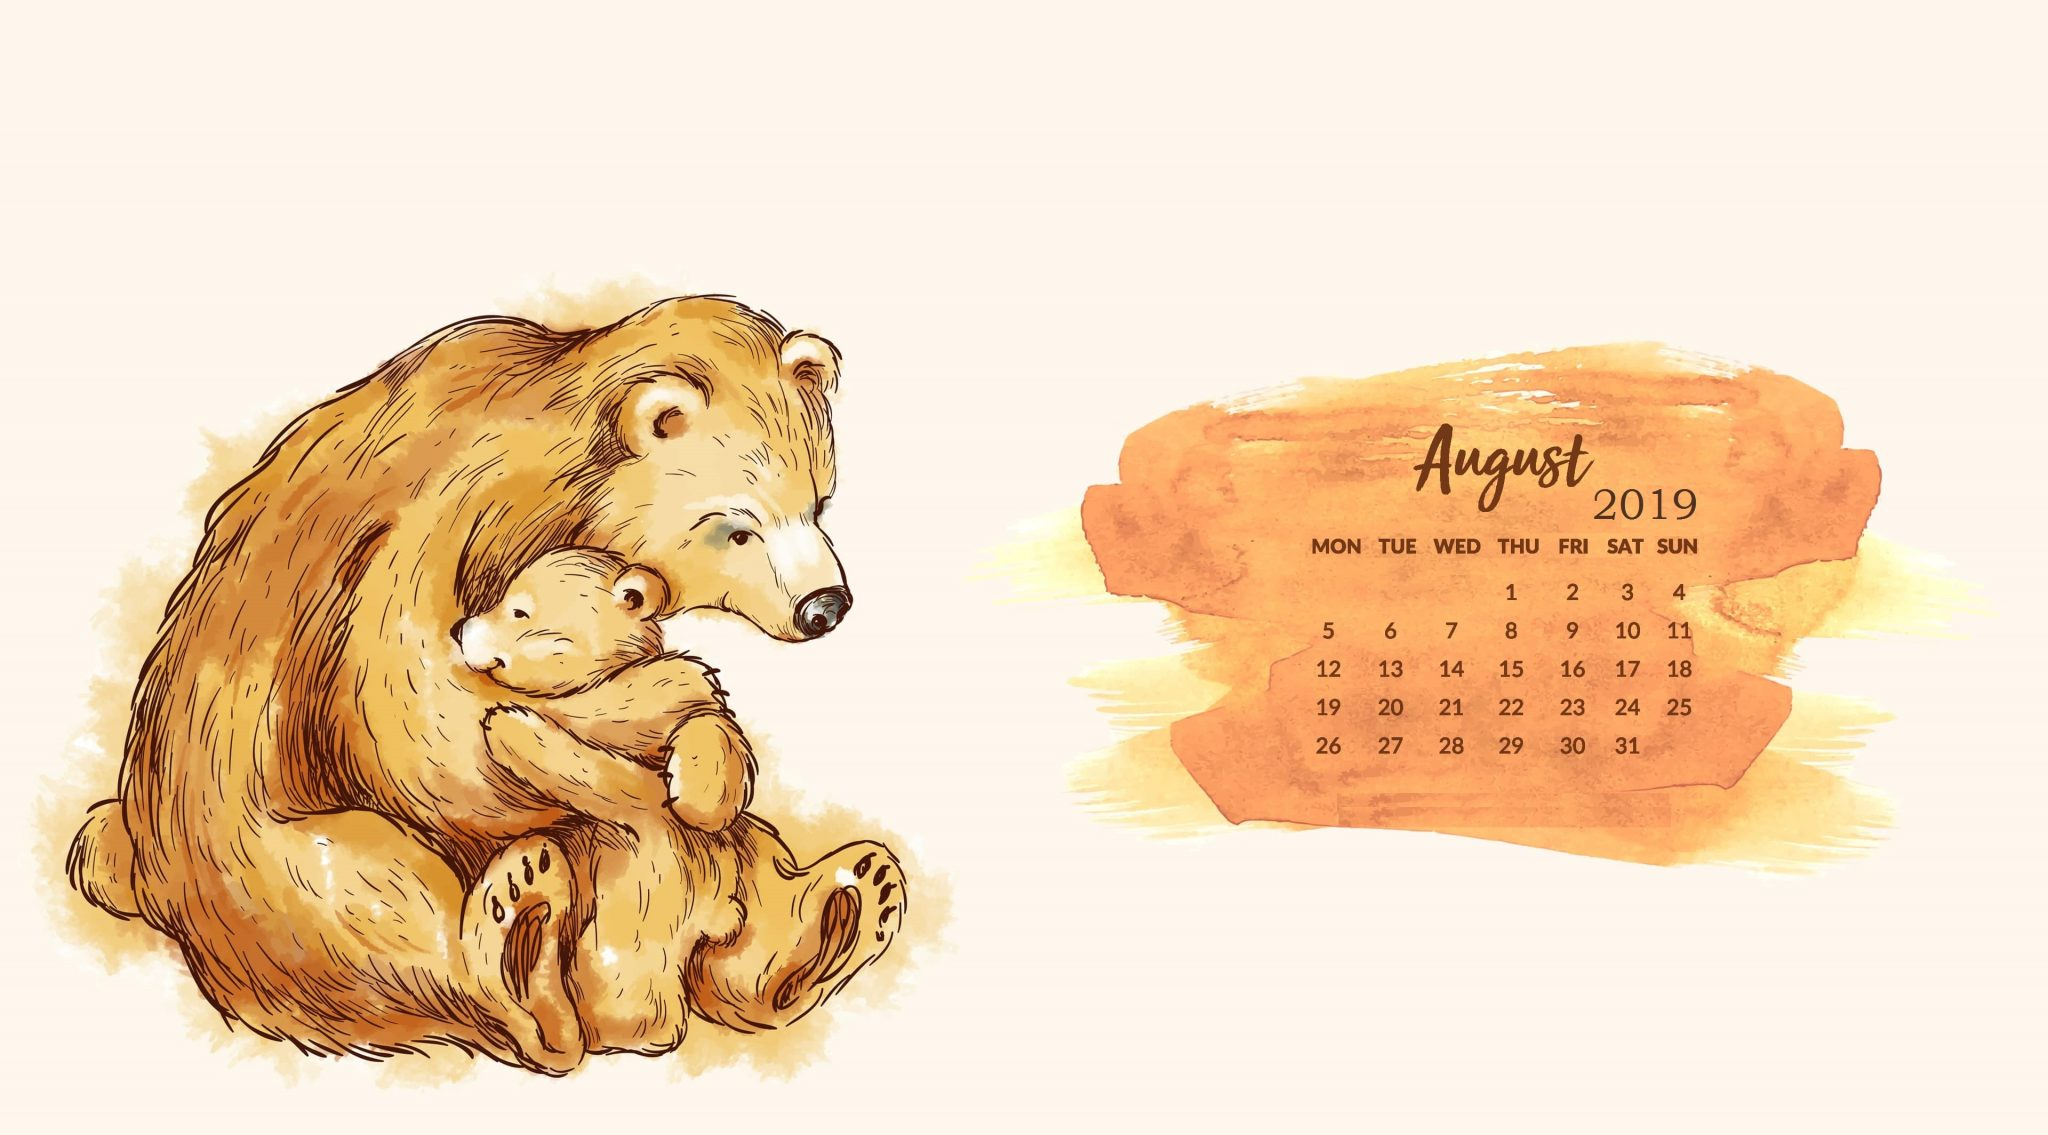 Download August 2019 Calendar Wallpaper